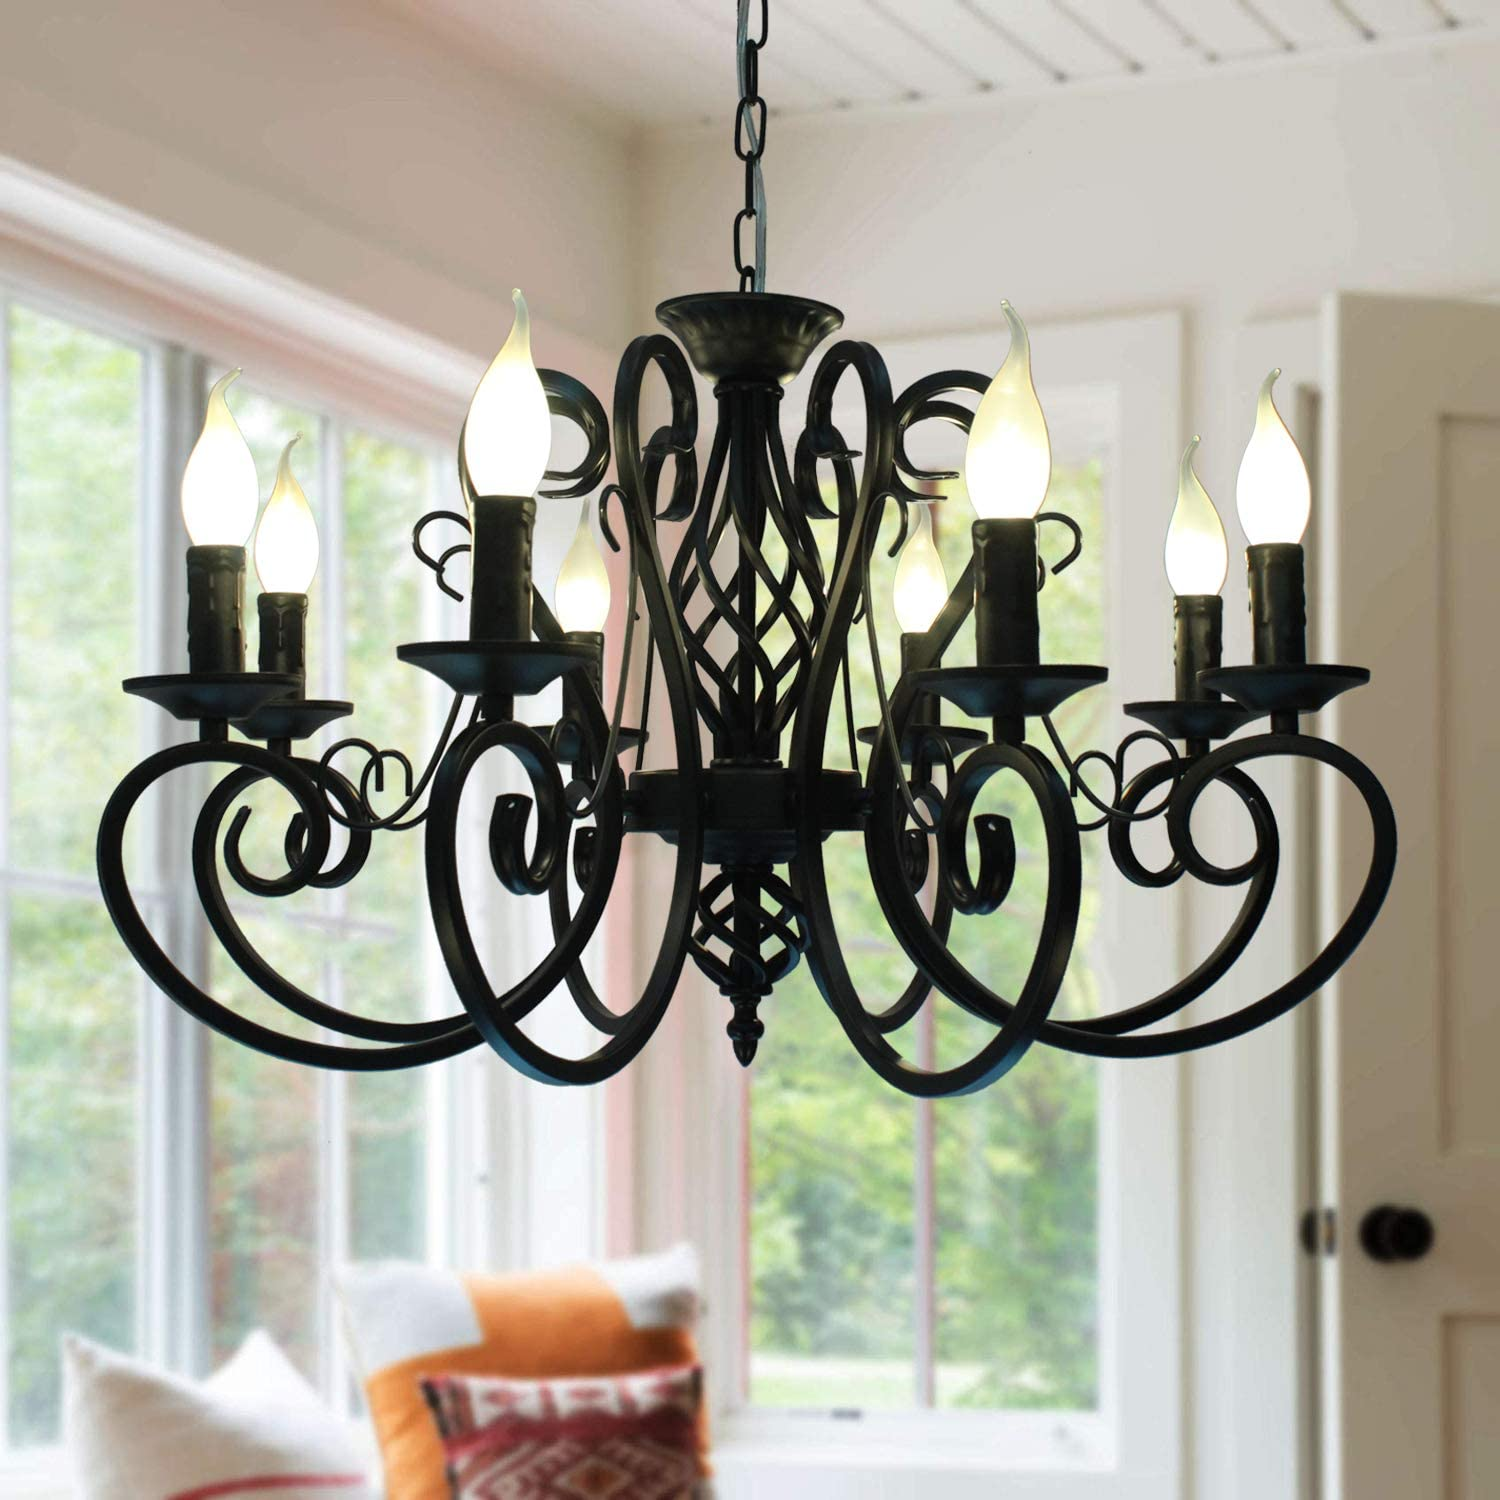 Ganeed French Country Chandeliers,8 Lights Kitchen Island Candle Iron Chandelier,Industrial Vintage Pendant Light Fixture for Farmhouse,Dining Room,Bedroom,Foyer